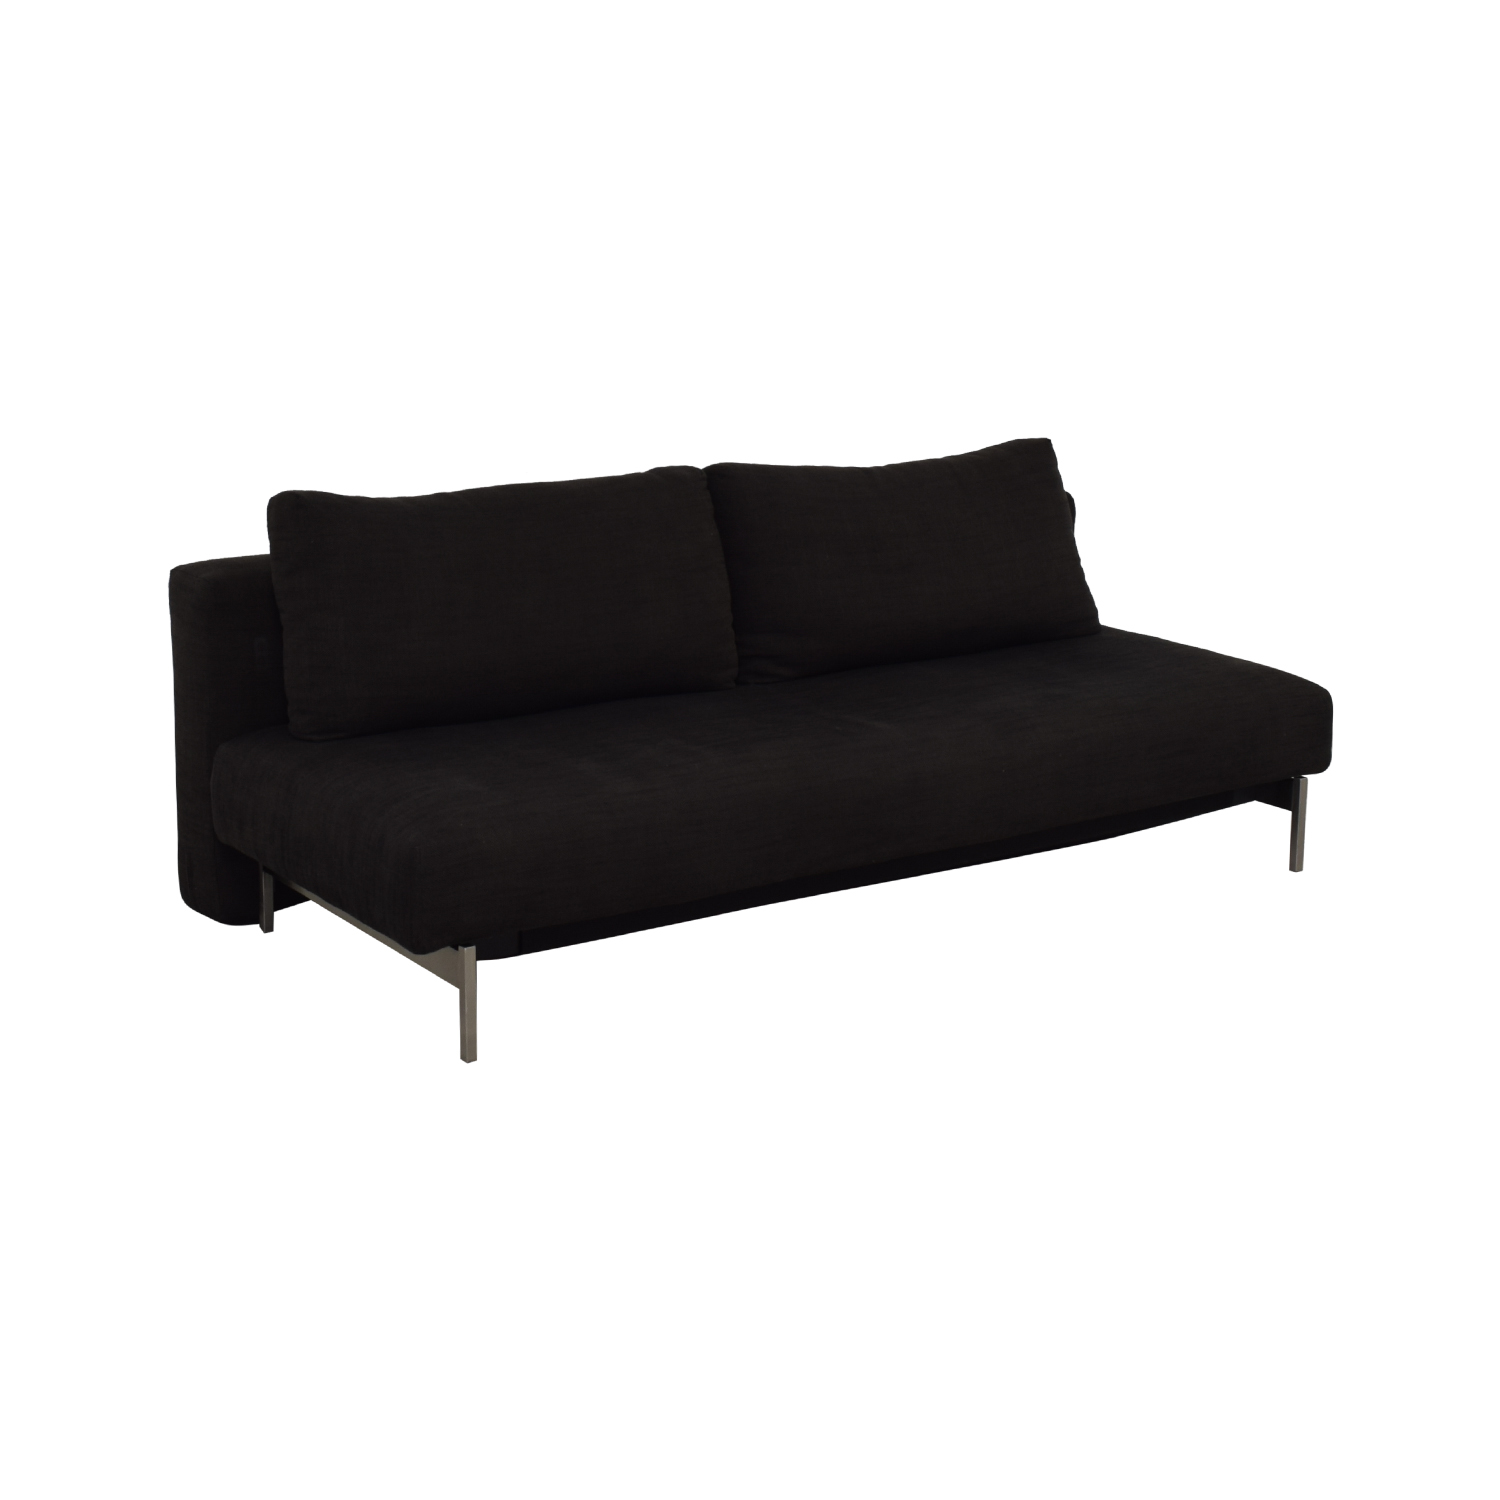 buy Room & Board Room & Board Sleeper Sofa online